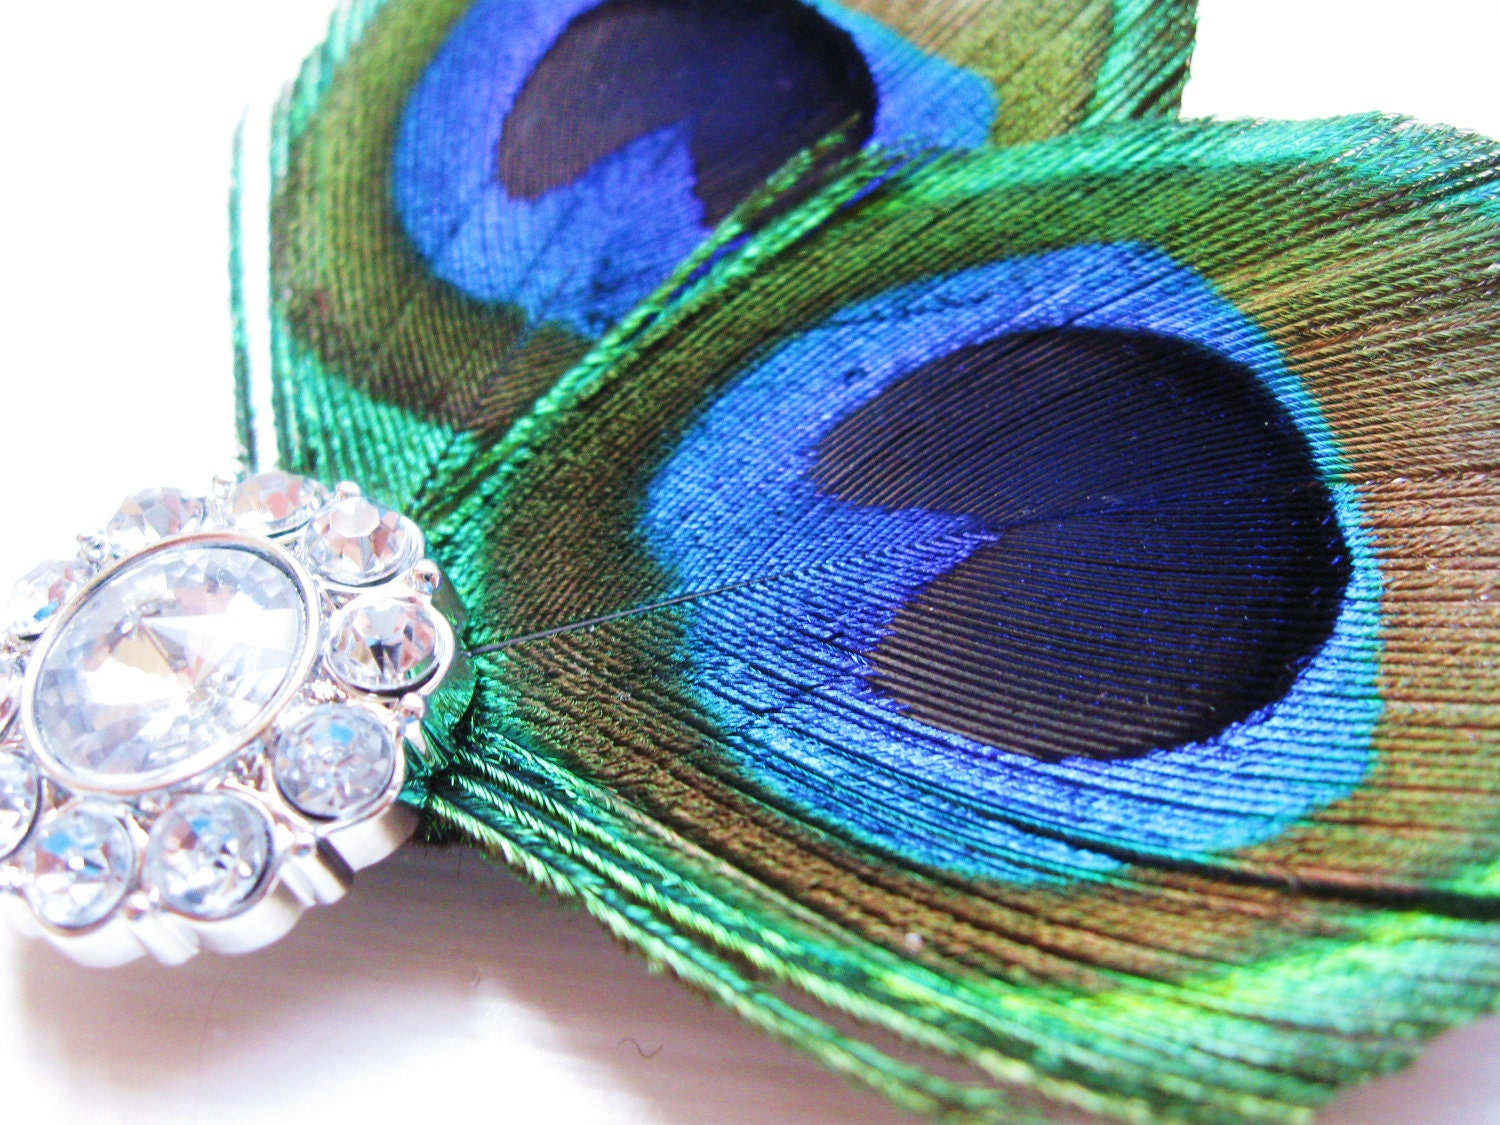 Elegant Peacock Feathers and sparkling gemstone- bride or formal hair accessory